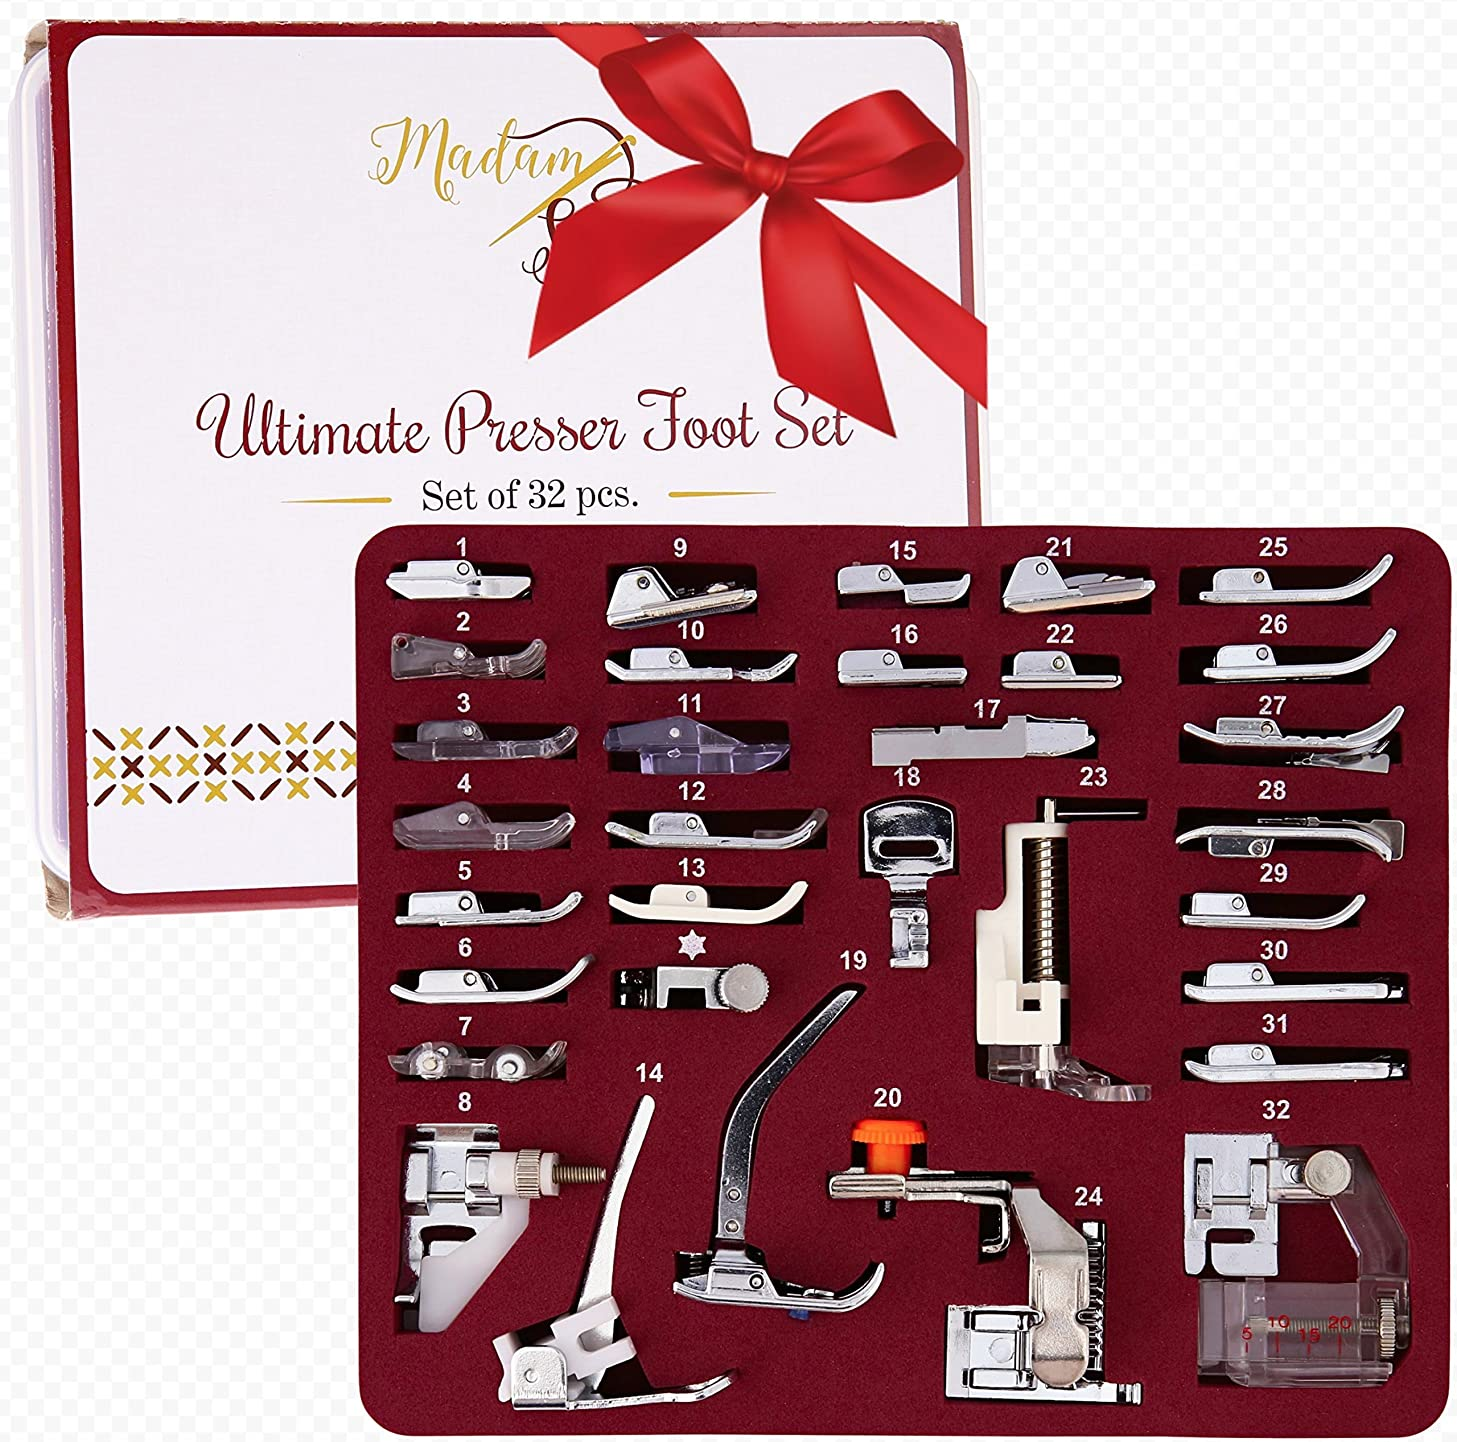 MadamSew Presser Foot Set 32 PCS - The ONLY One with Manual, DVD and Deluxe Storage Case with Numbered Slots for Easy and Neat Organization